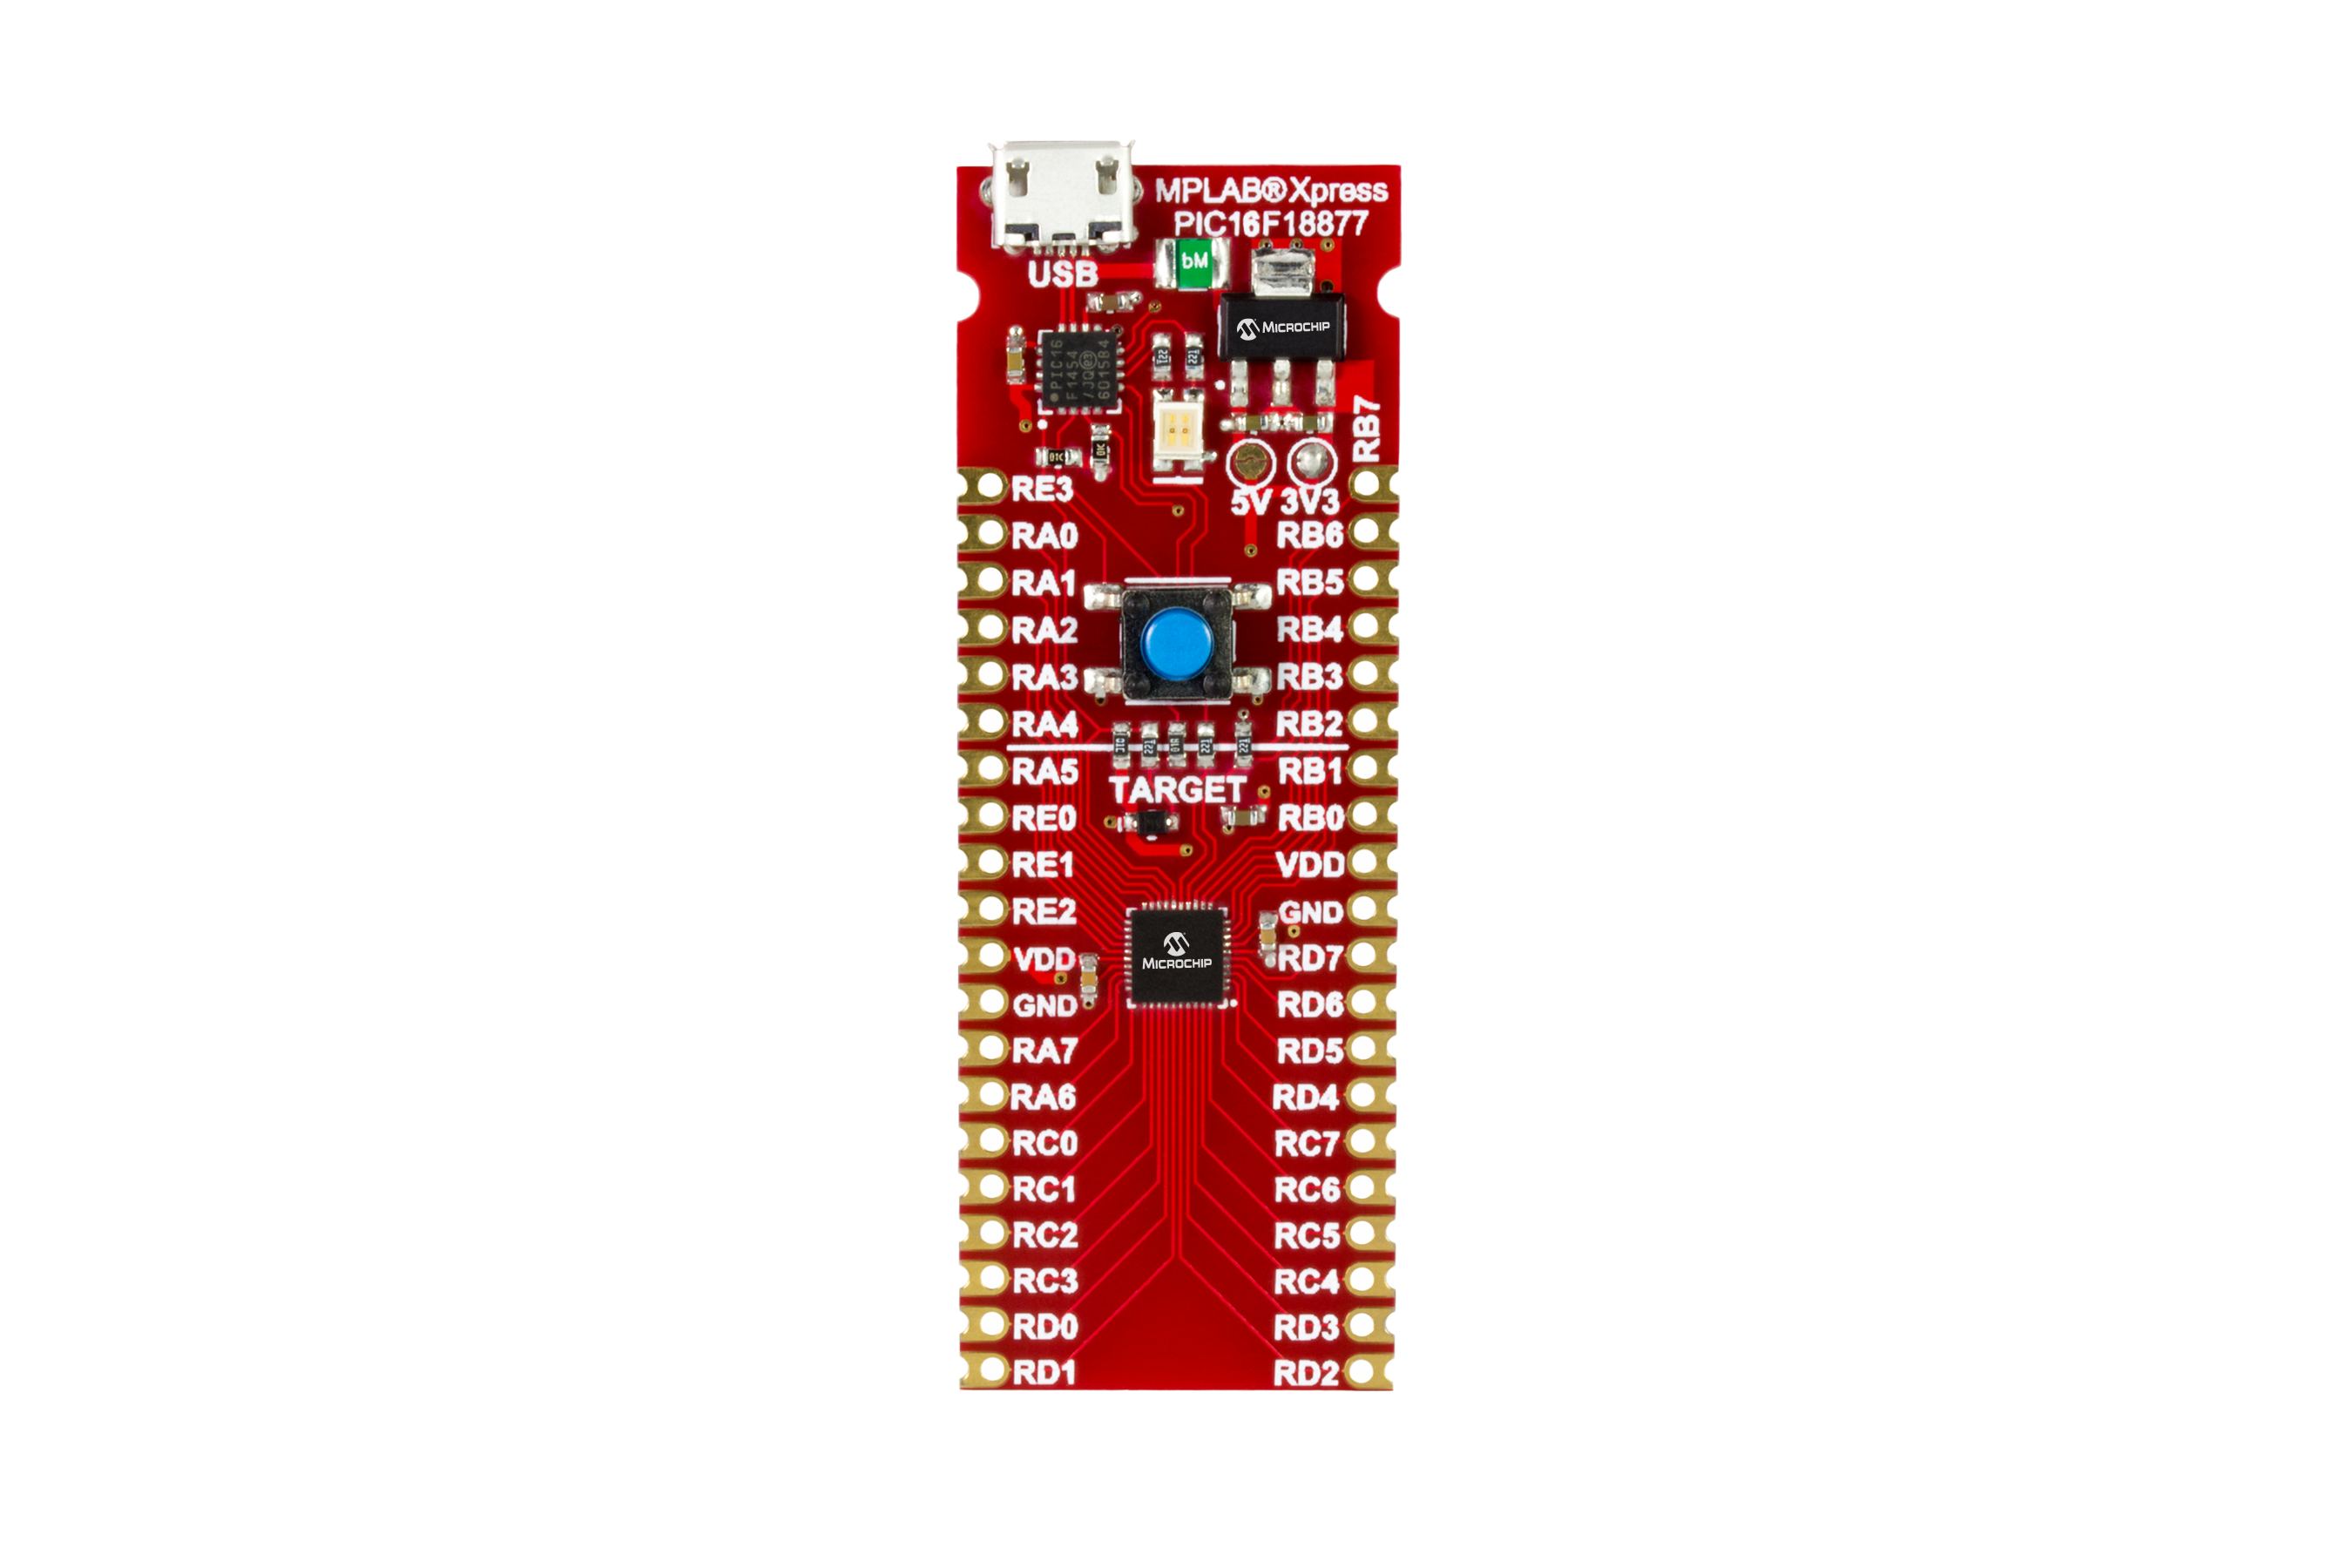 Development Tools Rc Servo Controller Circuit Using Pic18f252 This Mplab Xpress Board Makes Use Of The Pic16f18877 Mcu Coming From A Product Family That Showcases 10 Bit Adc With Computation Adc2 For Automated